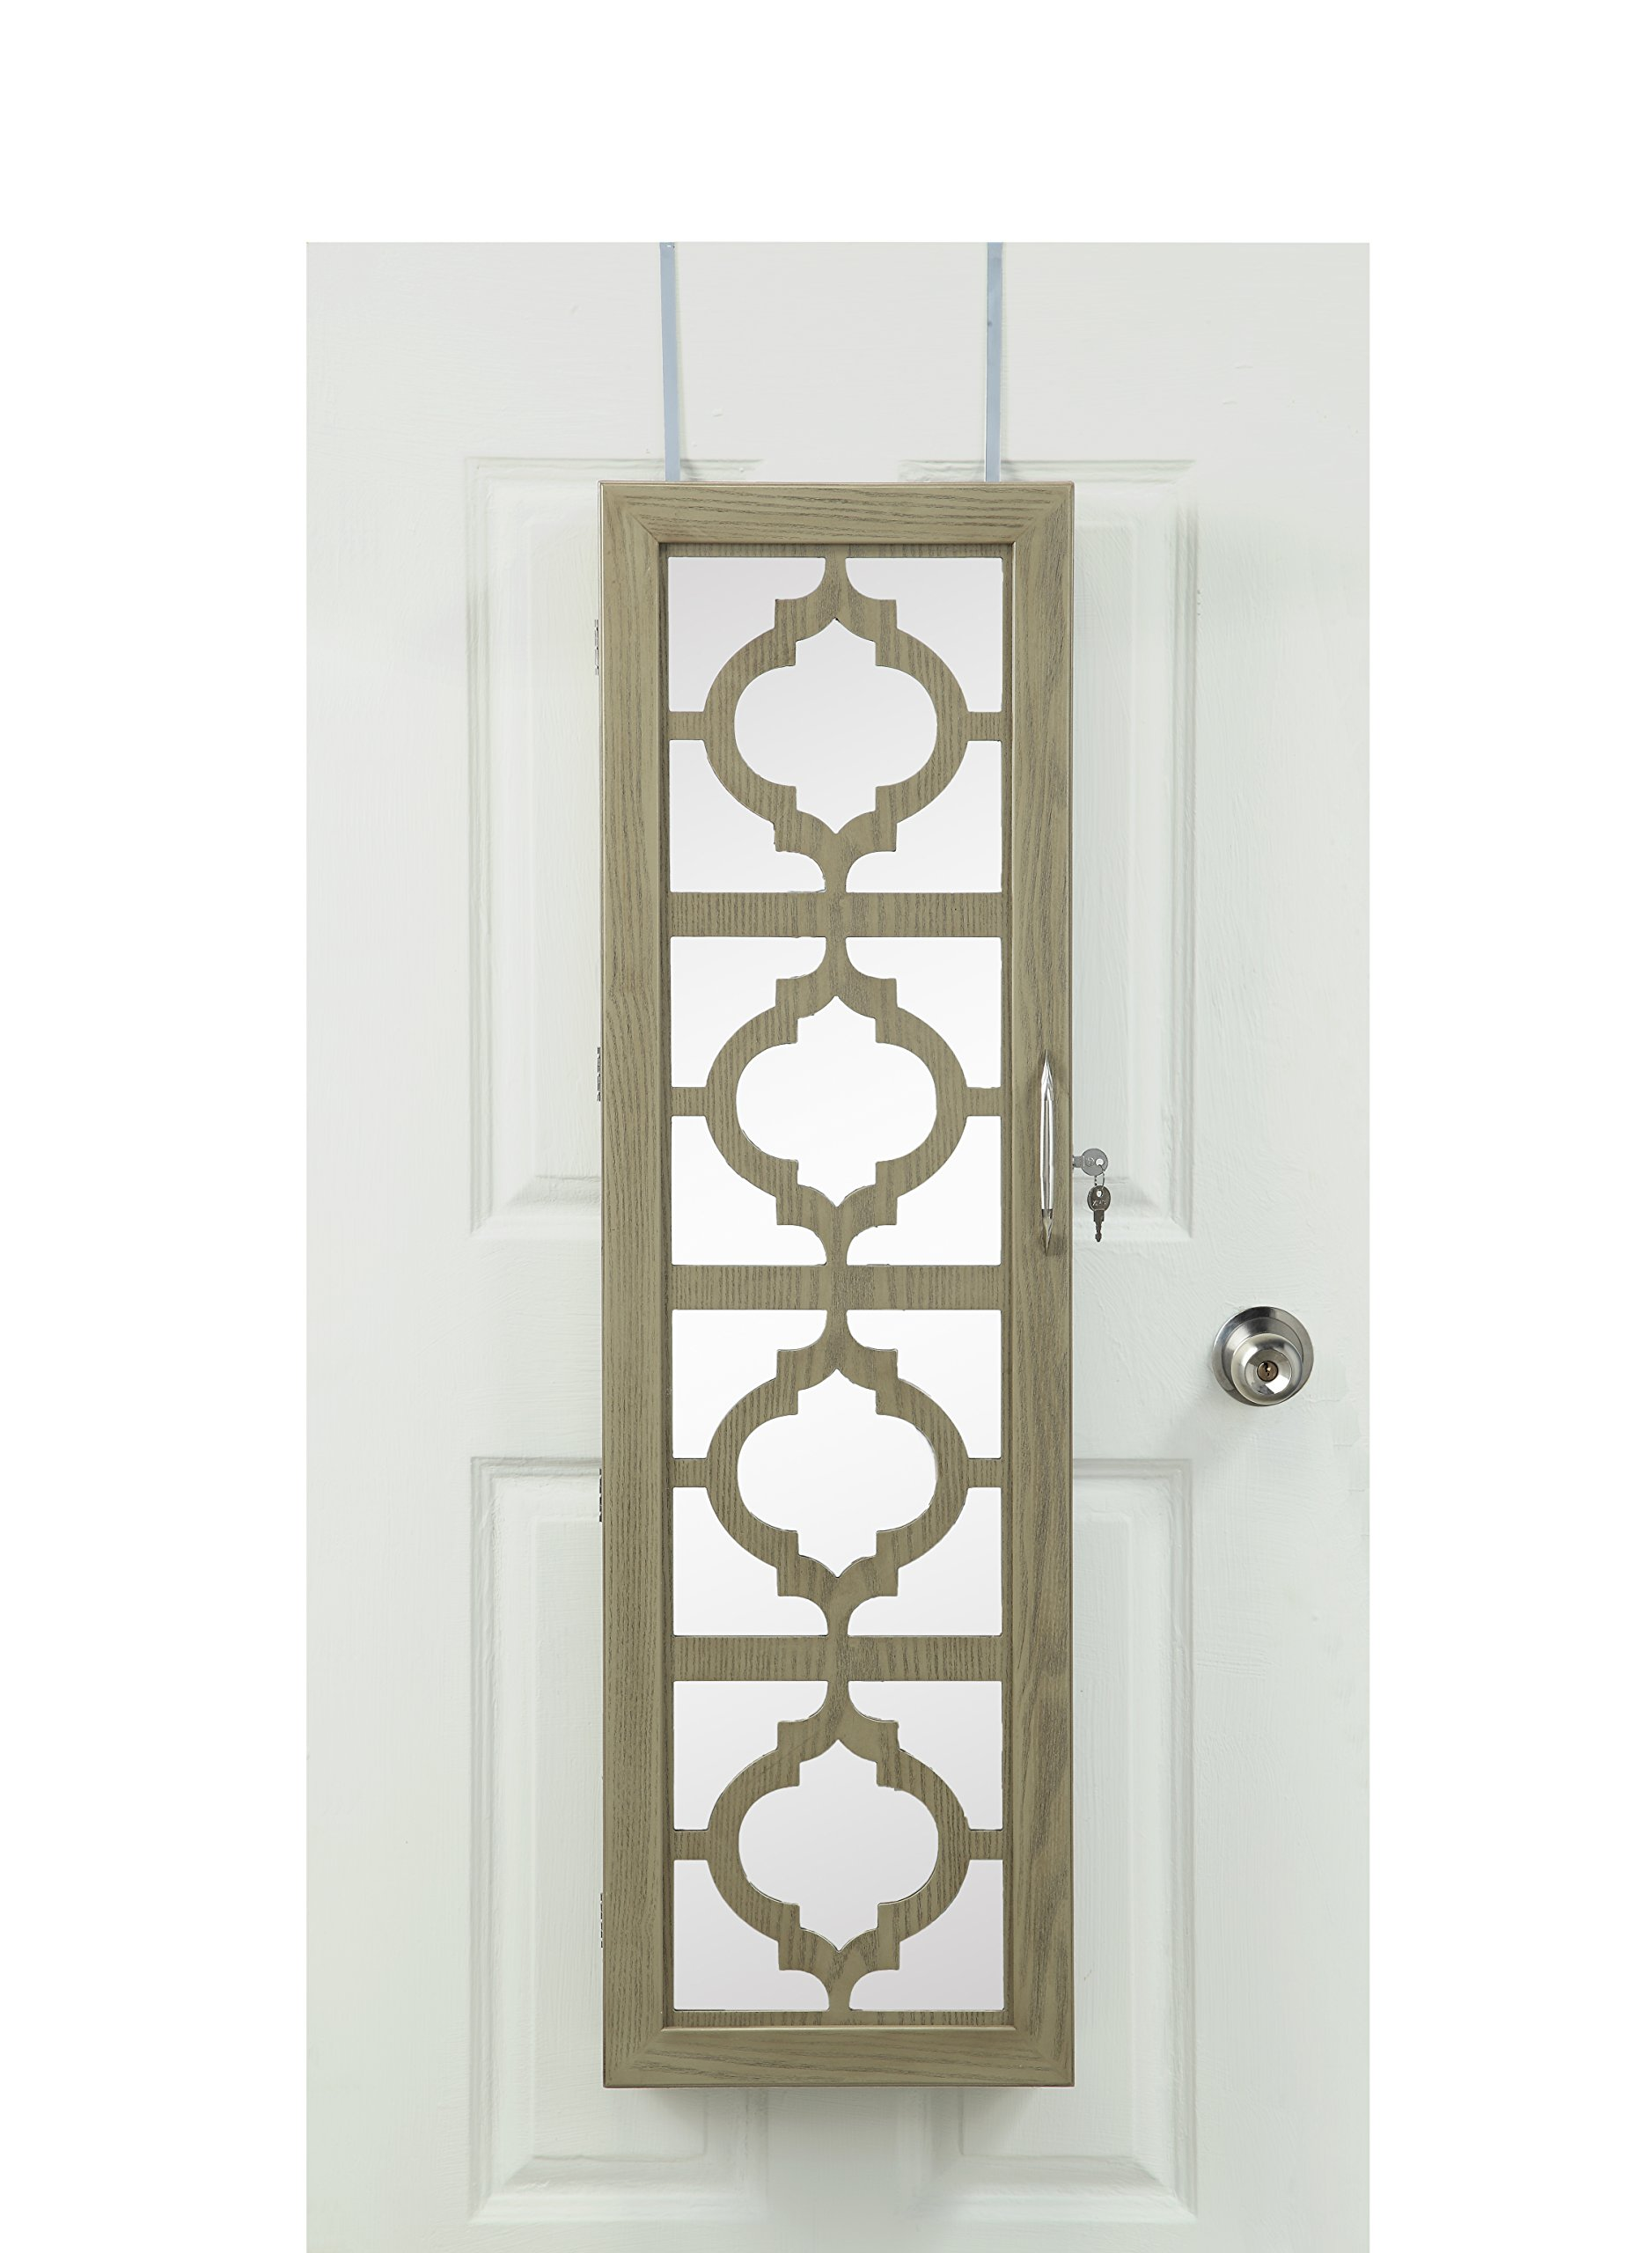 Lockable Wall Mounted Over the Door Jewelry Organizer Armoire Cabinet with Mirror Design Front and LED Lights by Abington Lane by Abington Lane (Image #5)